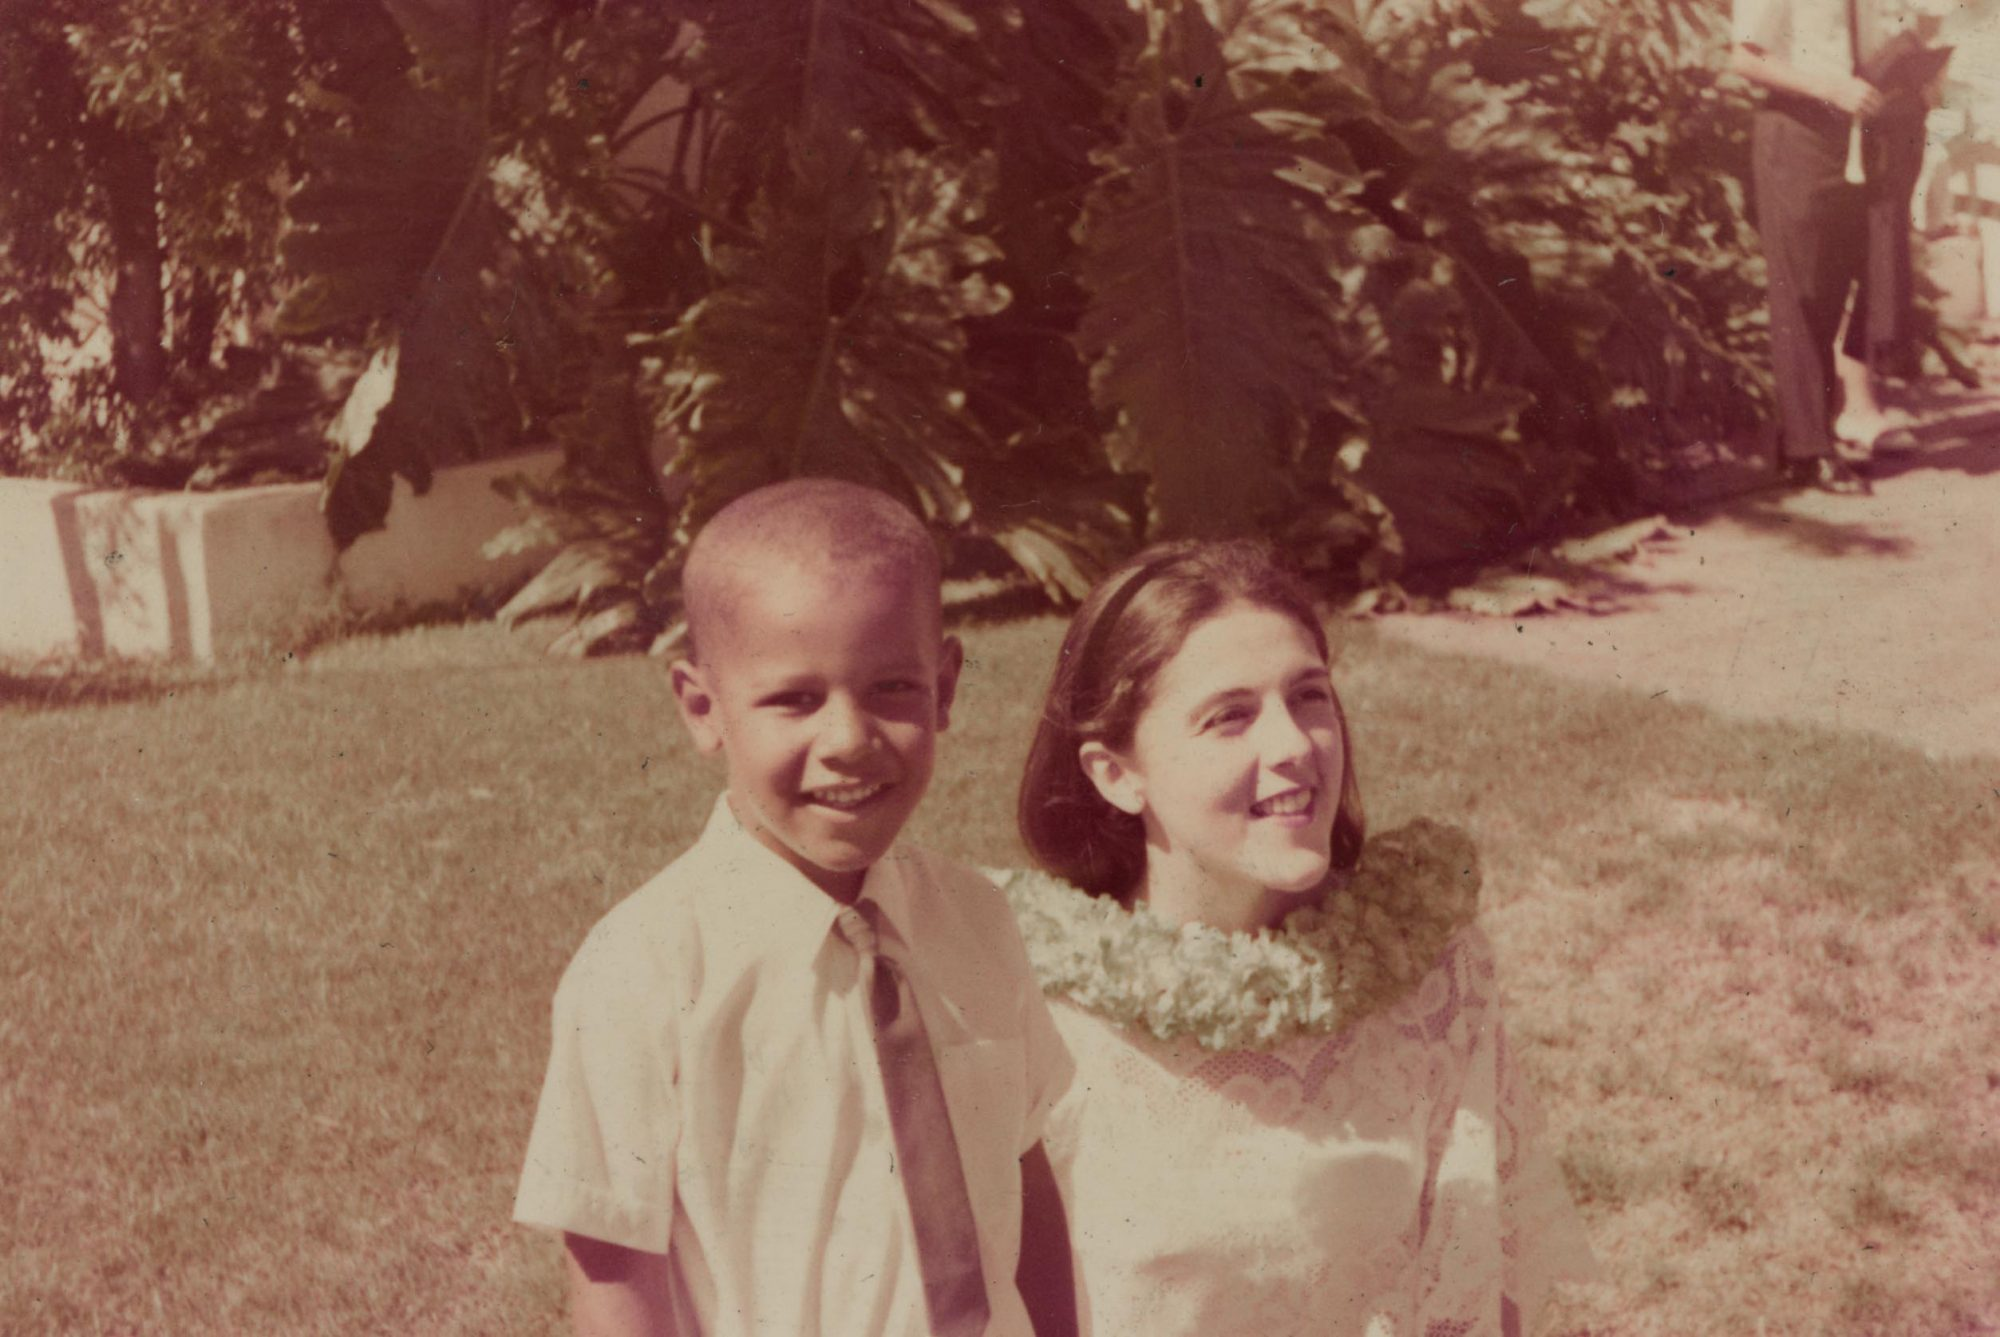 barack Obama in hawaii as a child